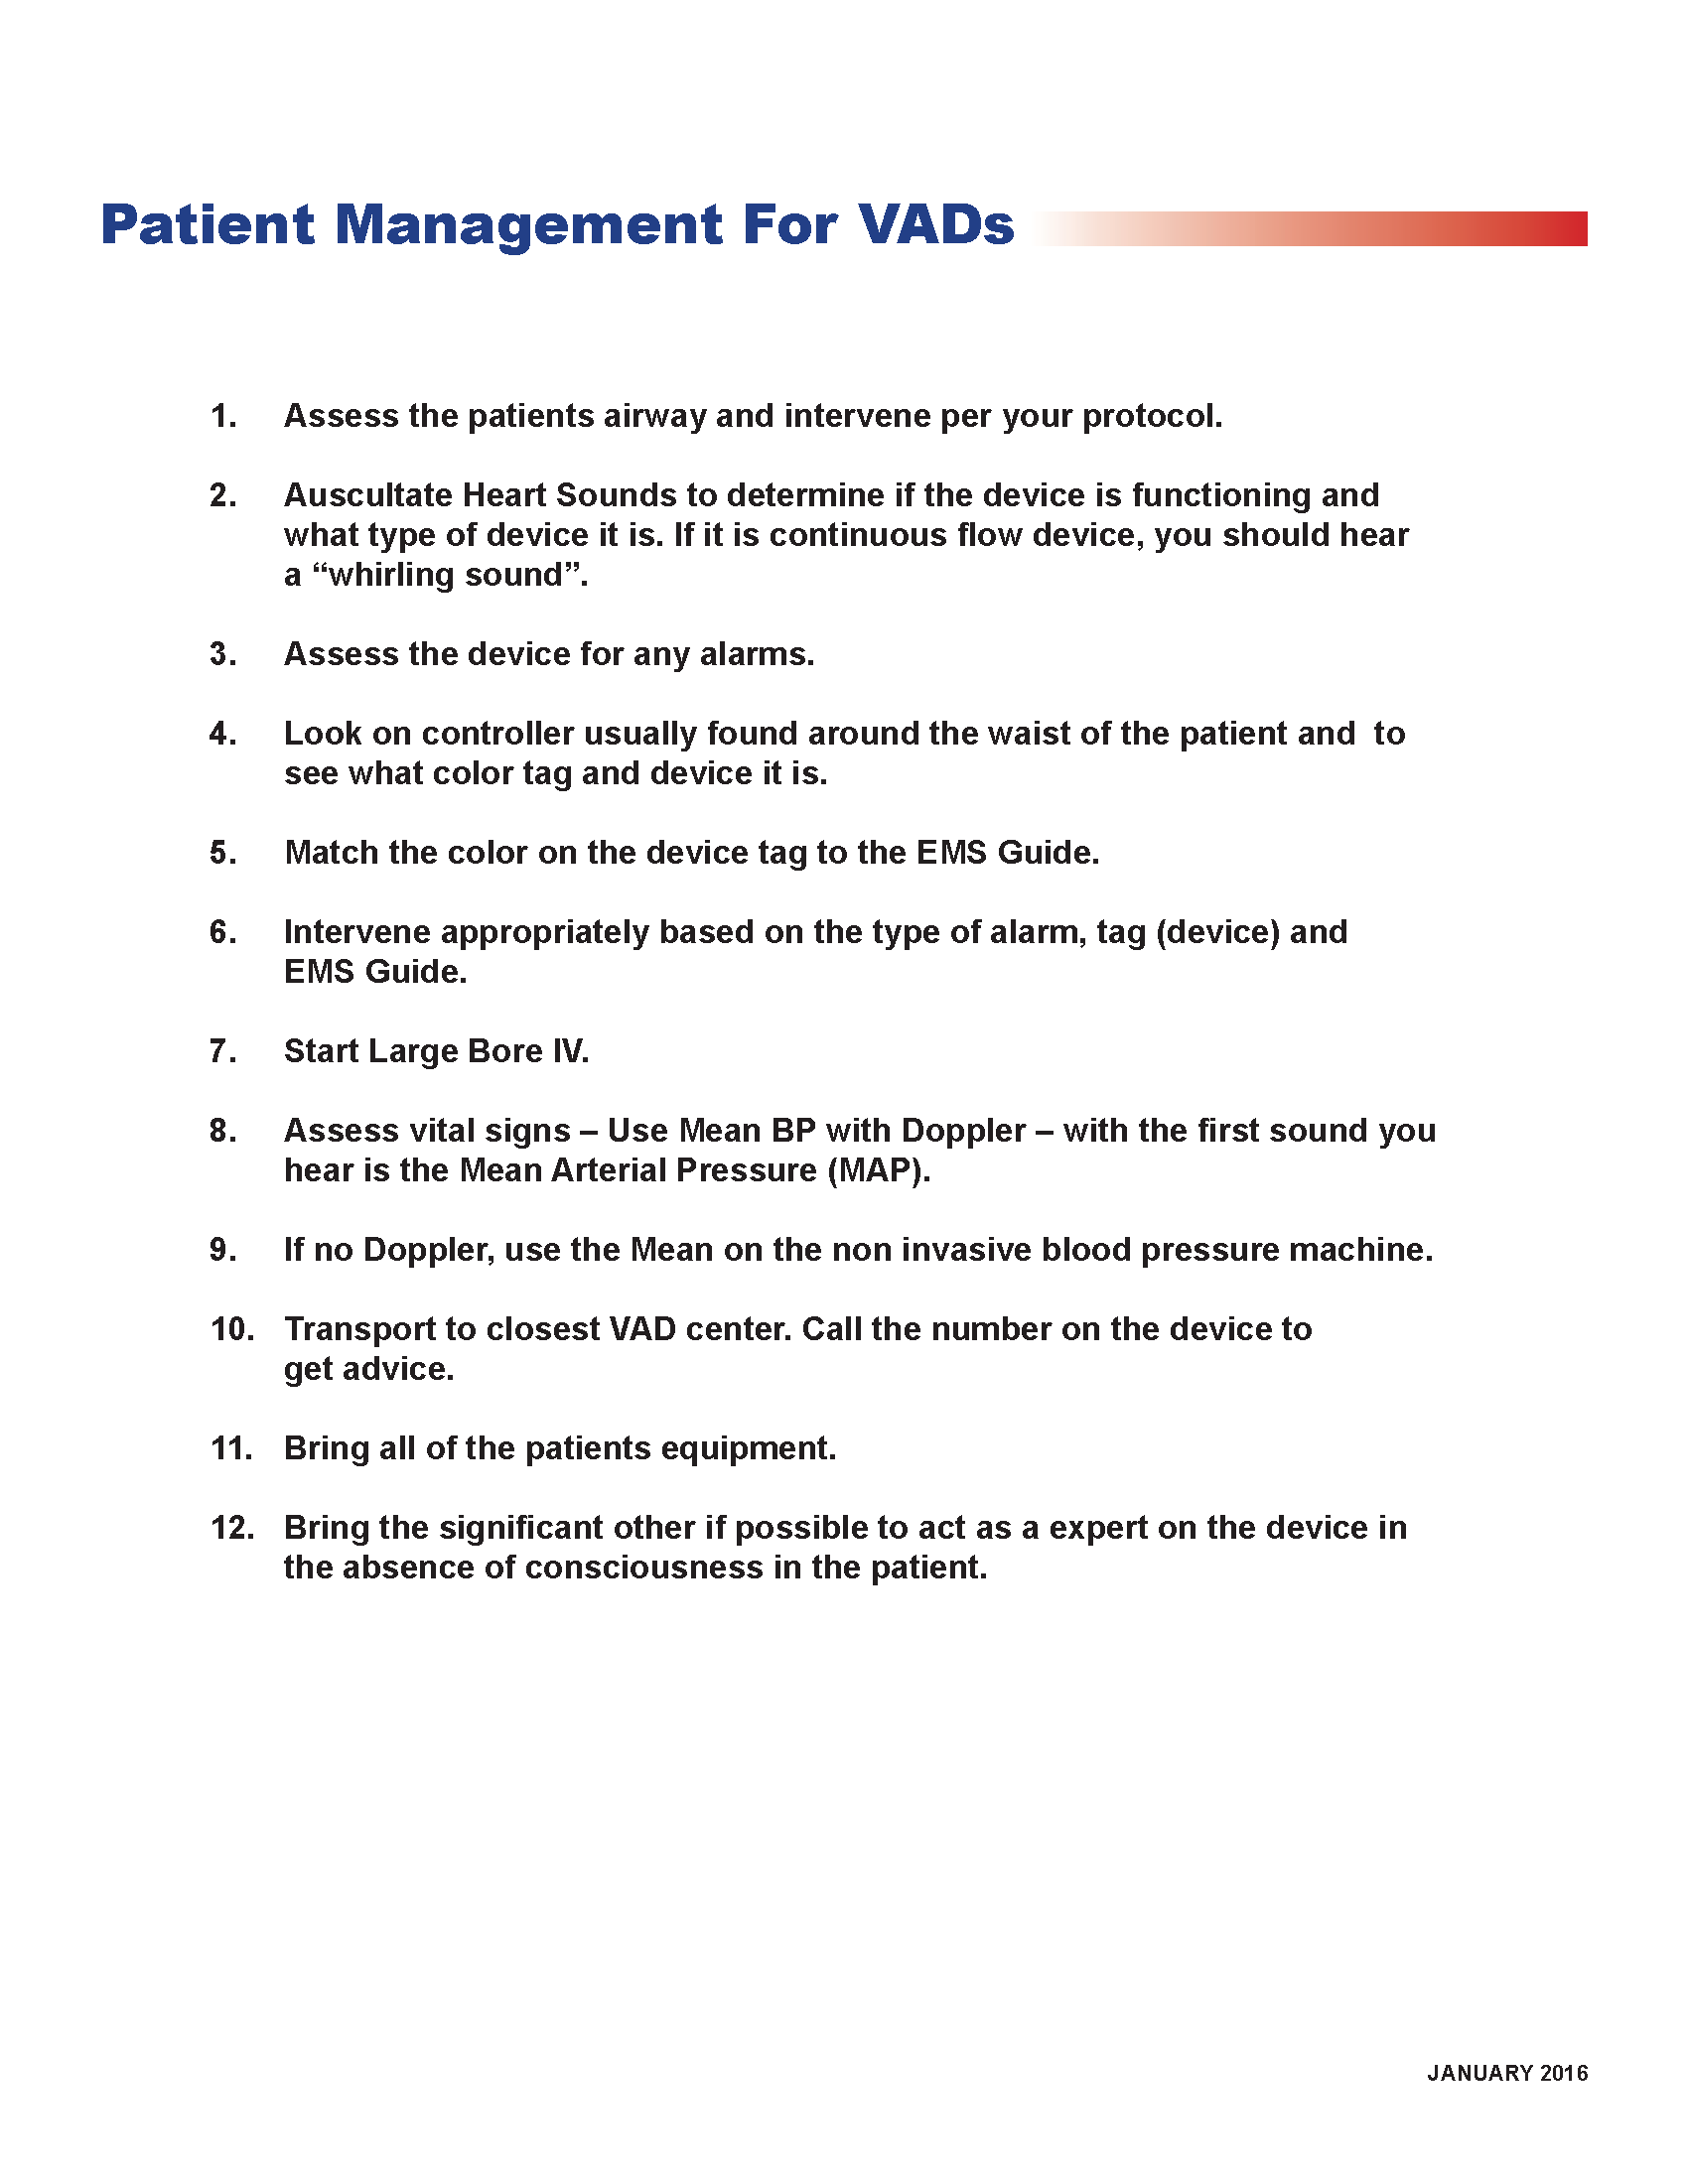 Ems Guidelines Duraheart_Page_2.png